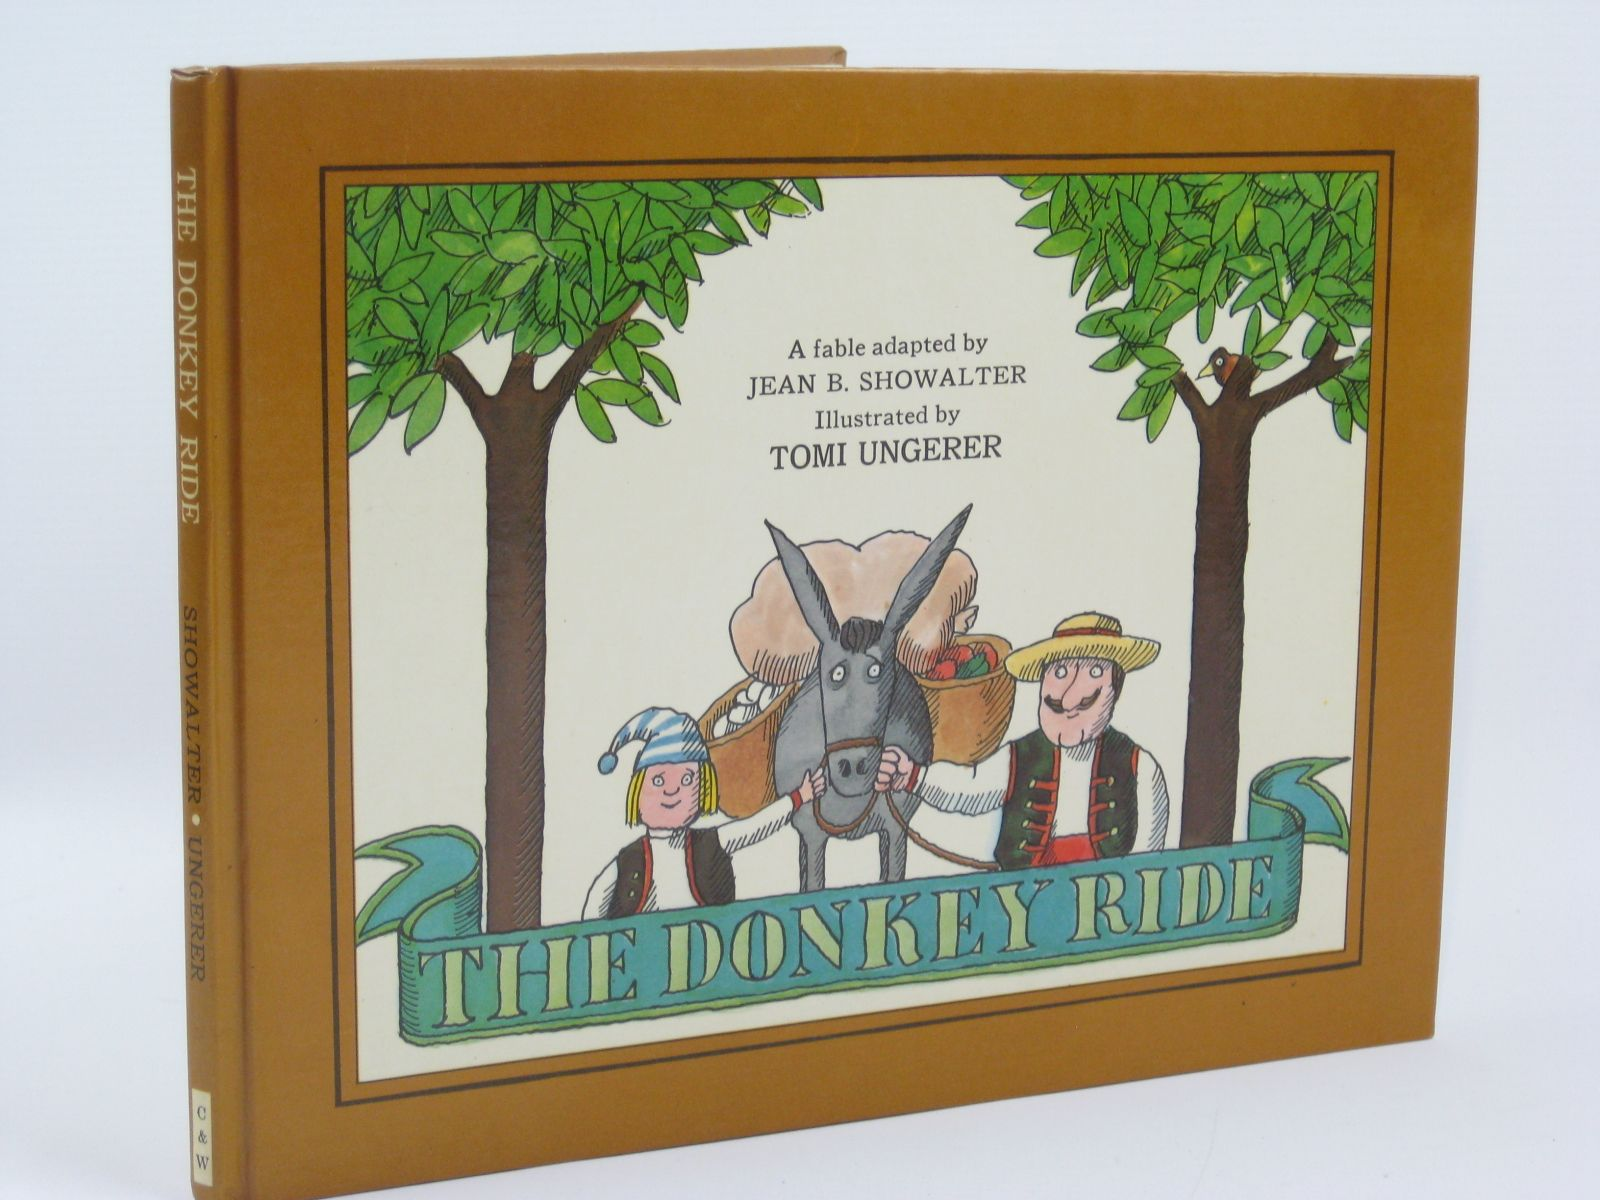 Photo of THE DONKEY RIDE written by Showalter, Jean B. illustrated by Ungerer, Tomi published by Chatto & Windus Ltd (STOCK CODE: 1316305)  for sale by Stella & Rose's Books